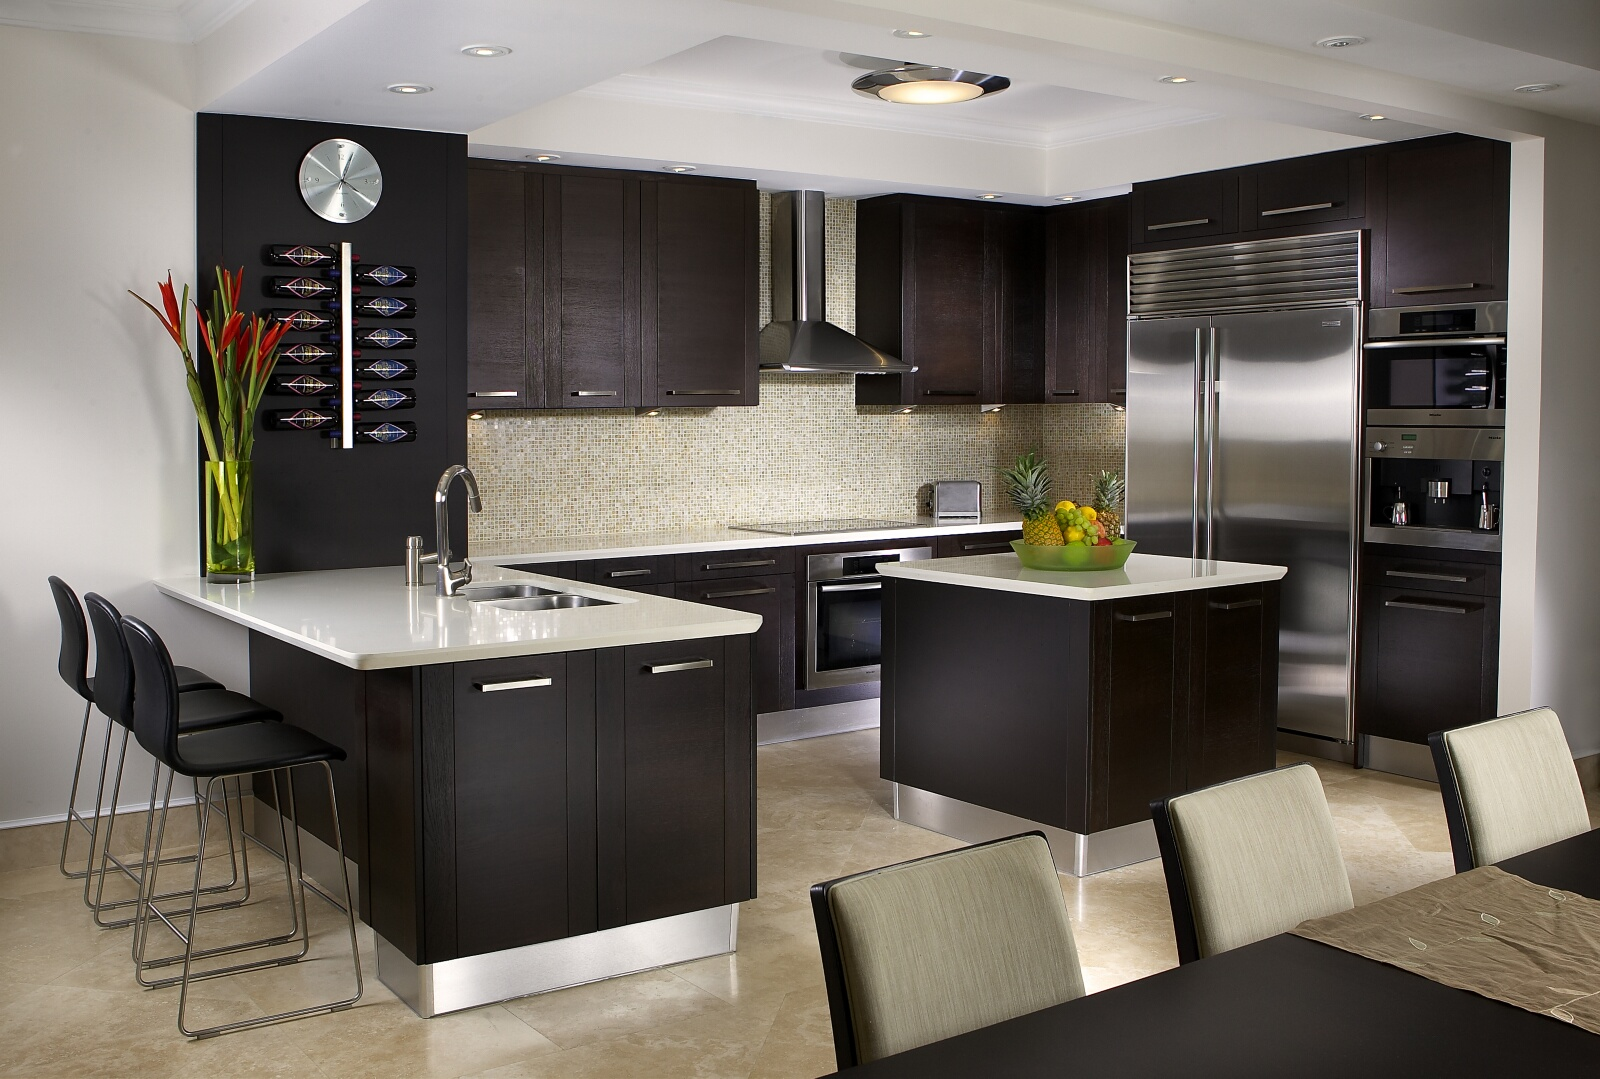 Kitchen interior design services miami florida for Kitchenette designs photos